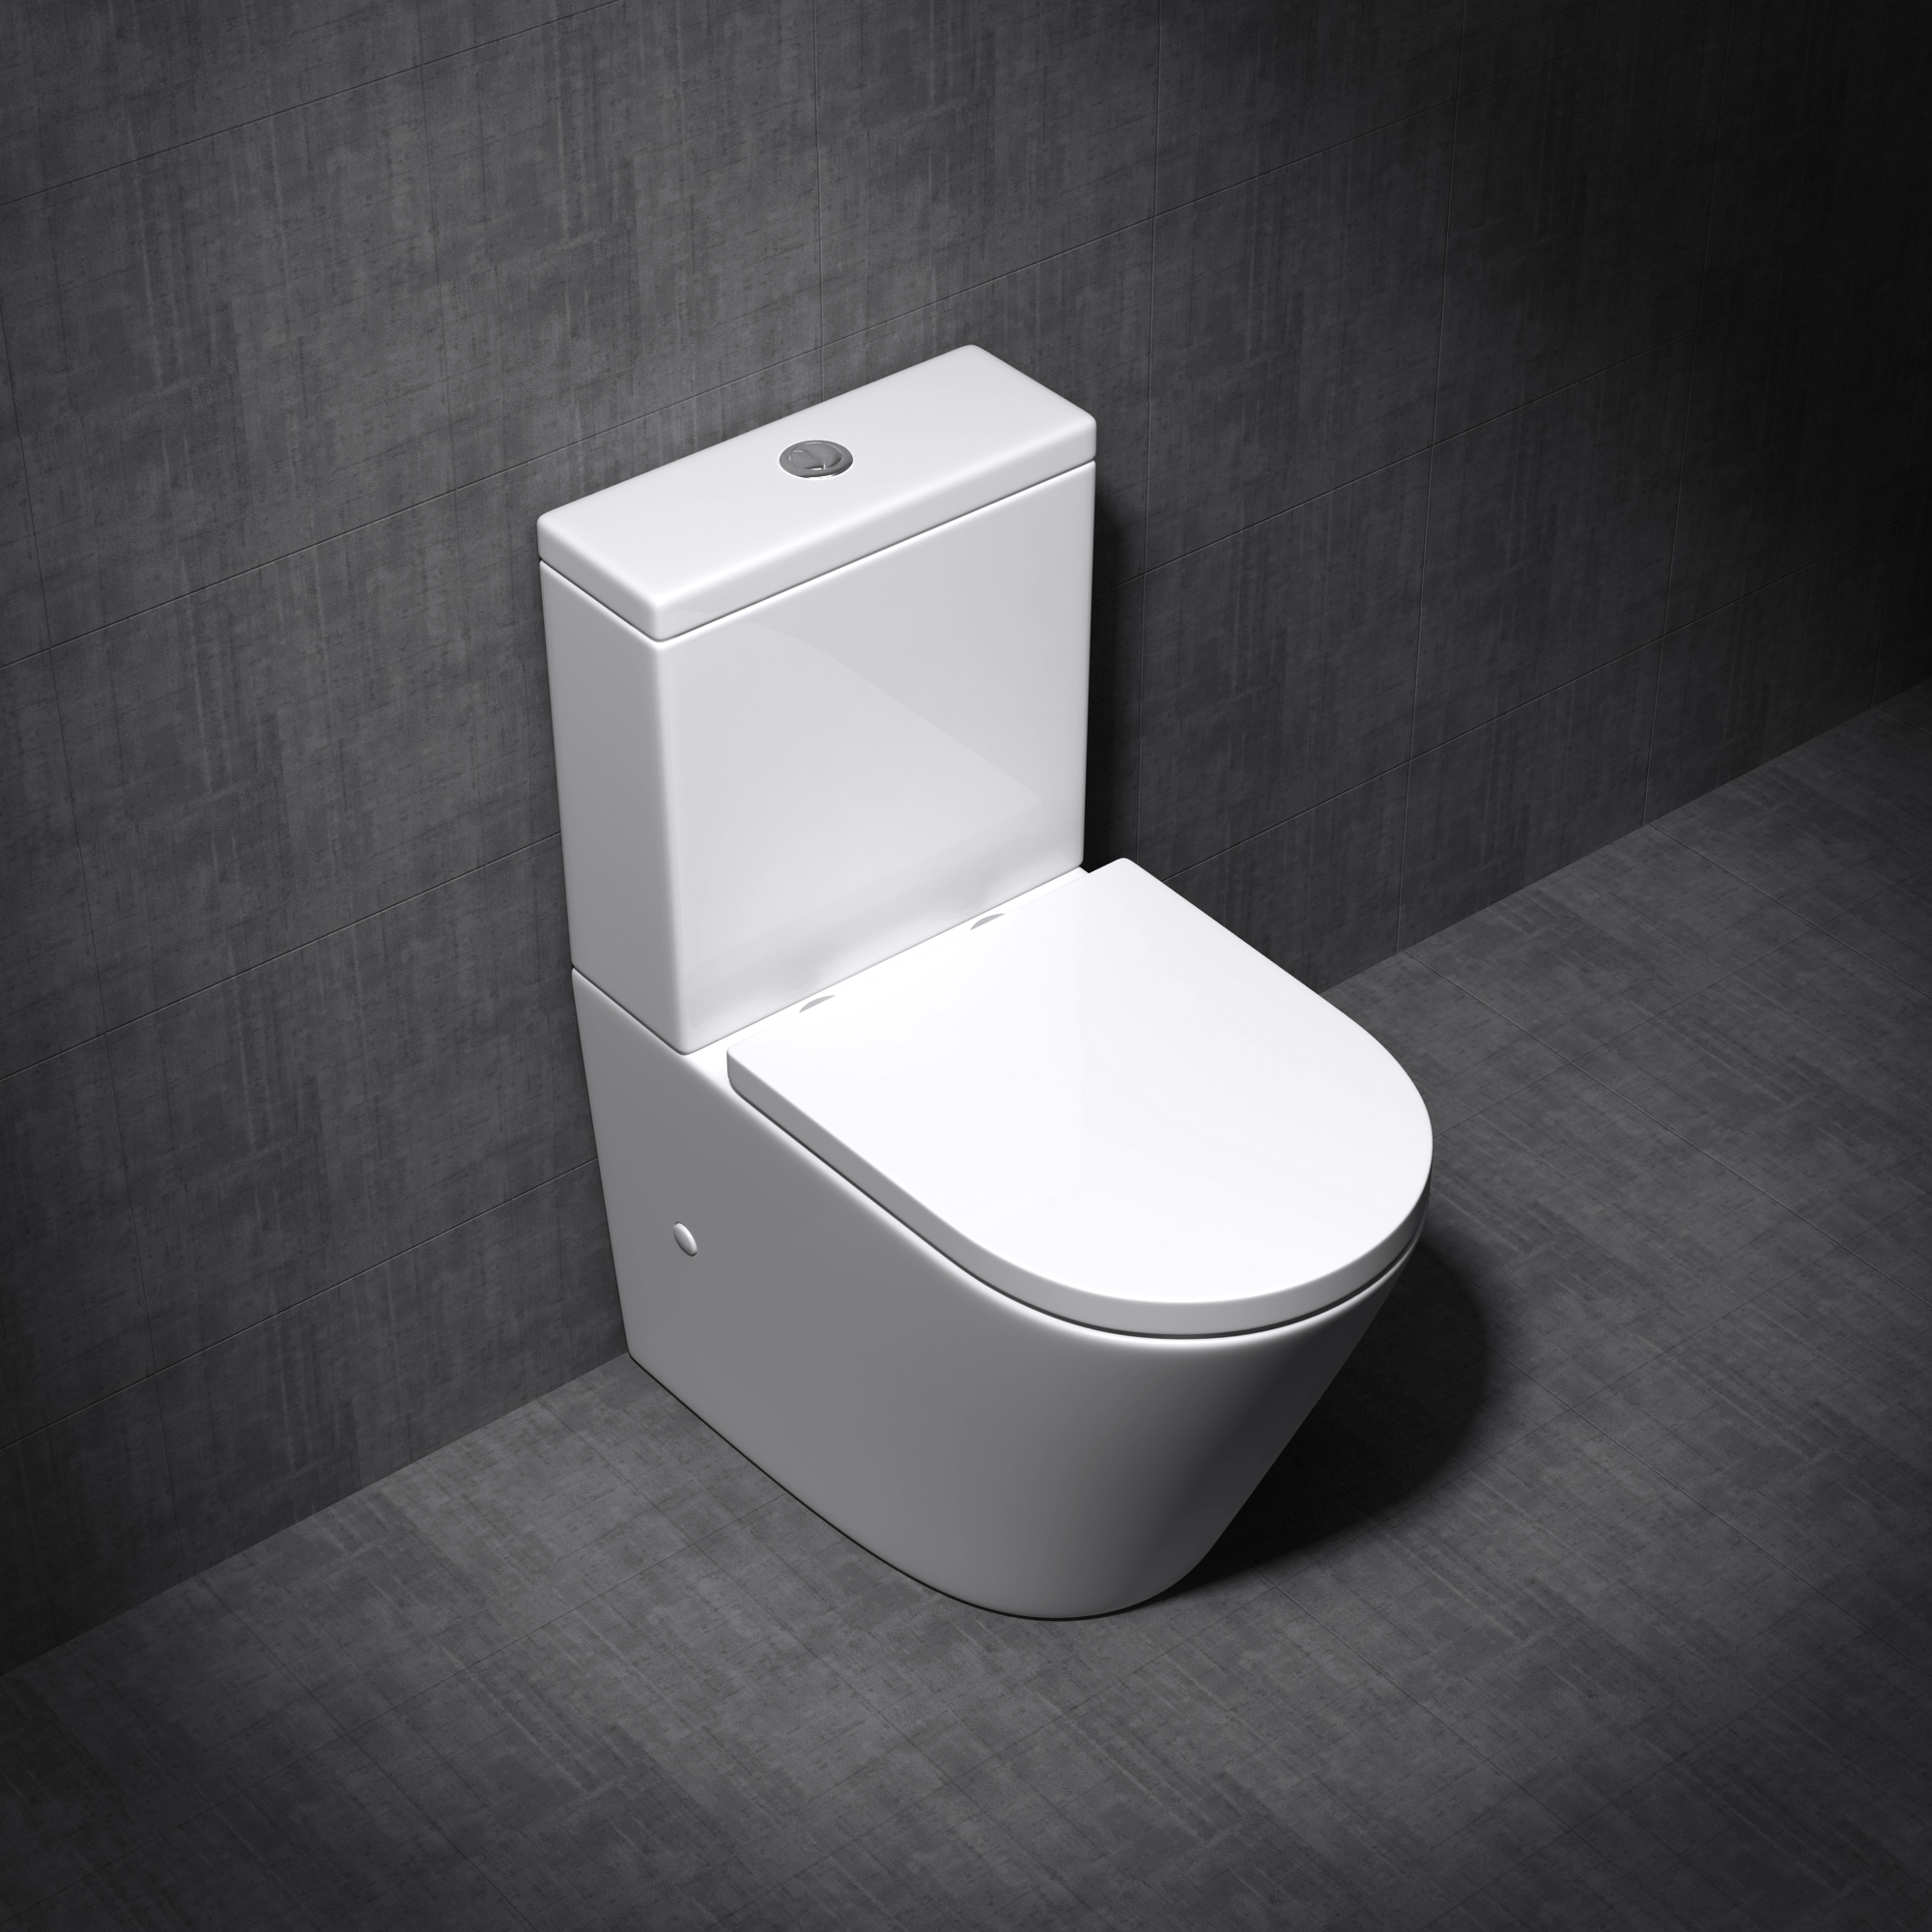 sp lrandloses wc mit sp lkasten stand toilette softclose wc sitz abnehmbar neu ebay. Black Bedroom Furniture Sets. Home Design Ideas